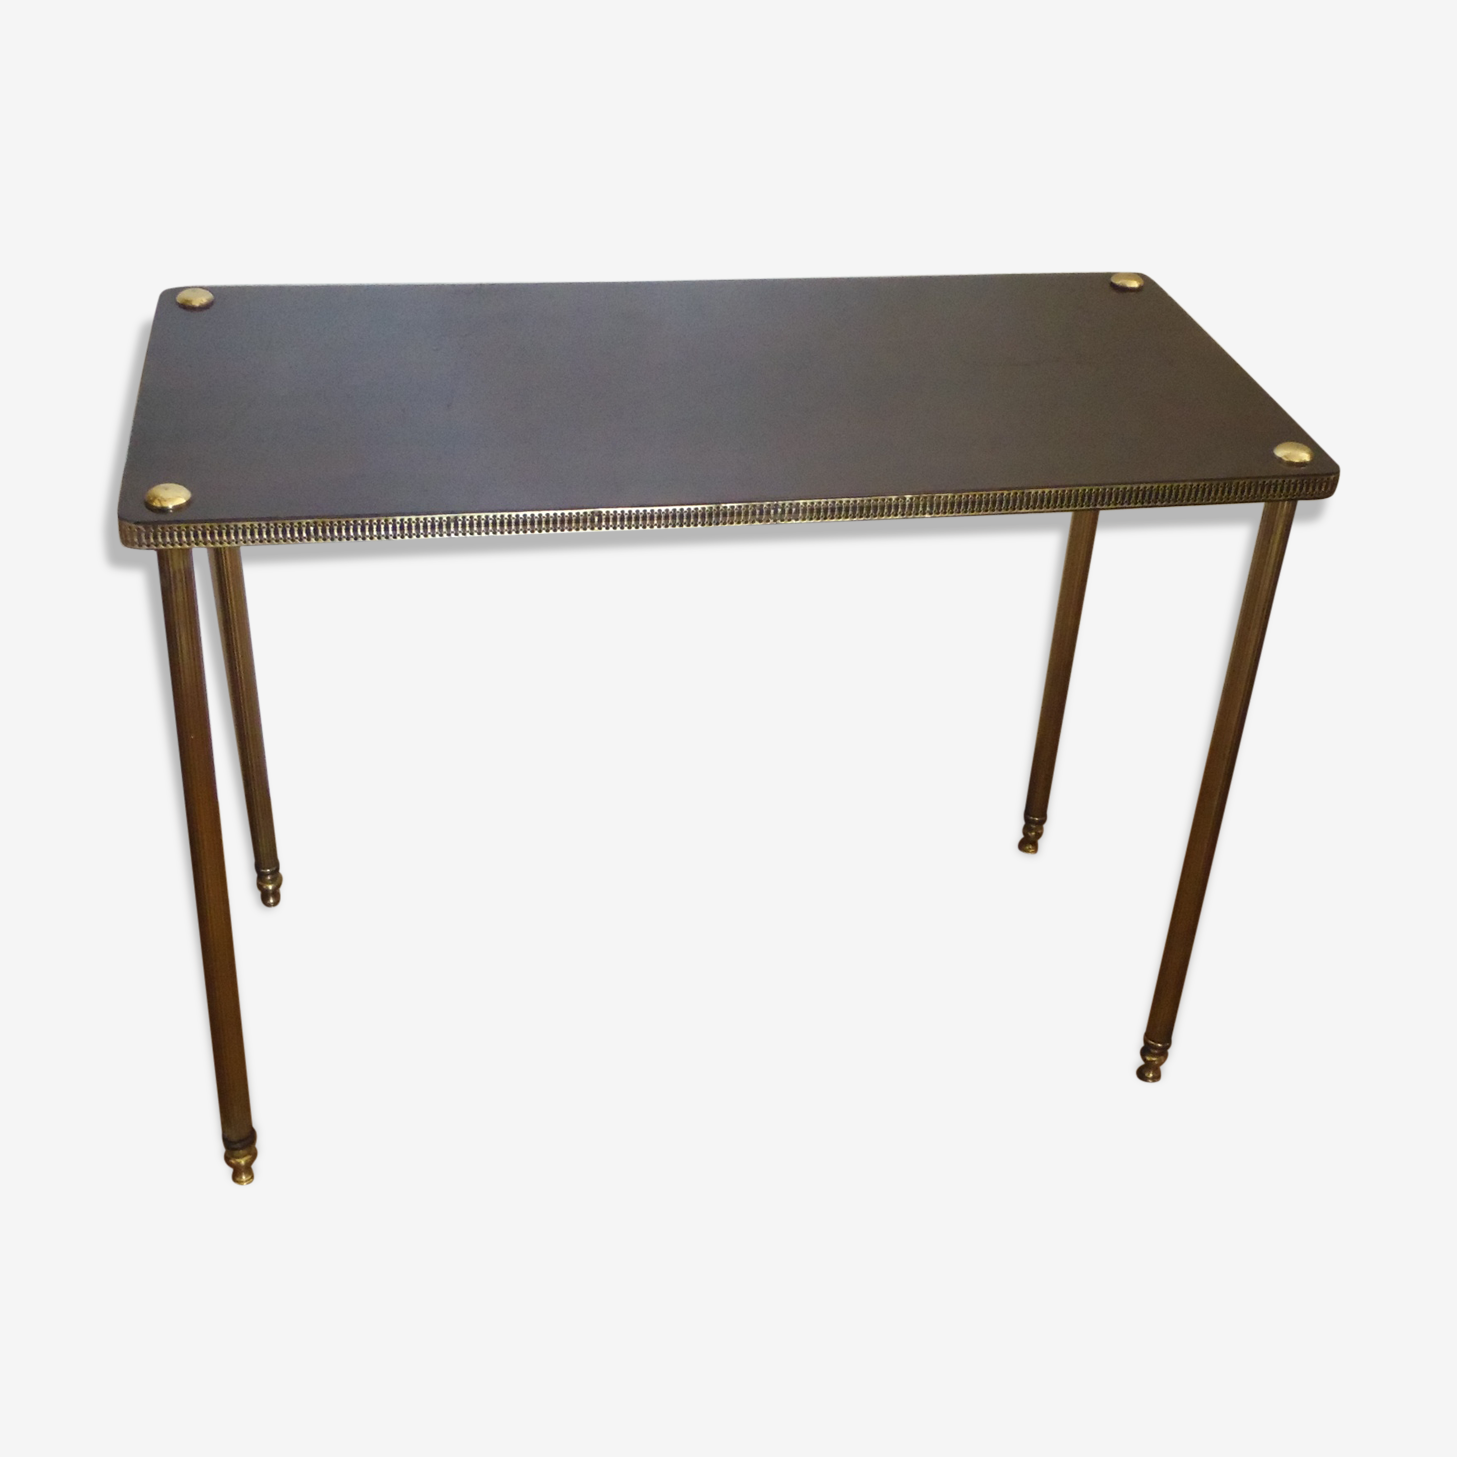 Table d'appoint, bout de canapé, 50's